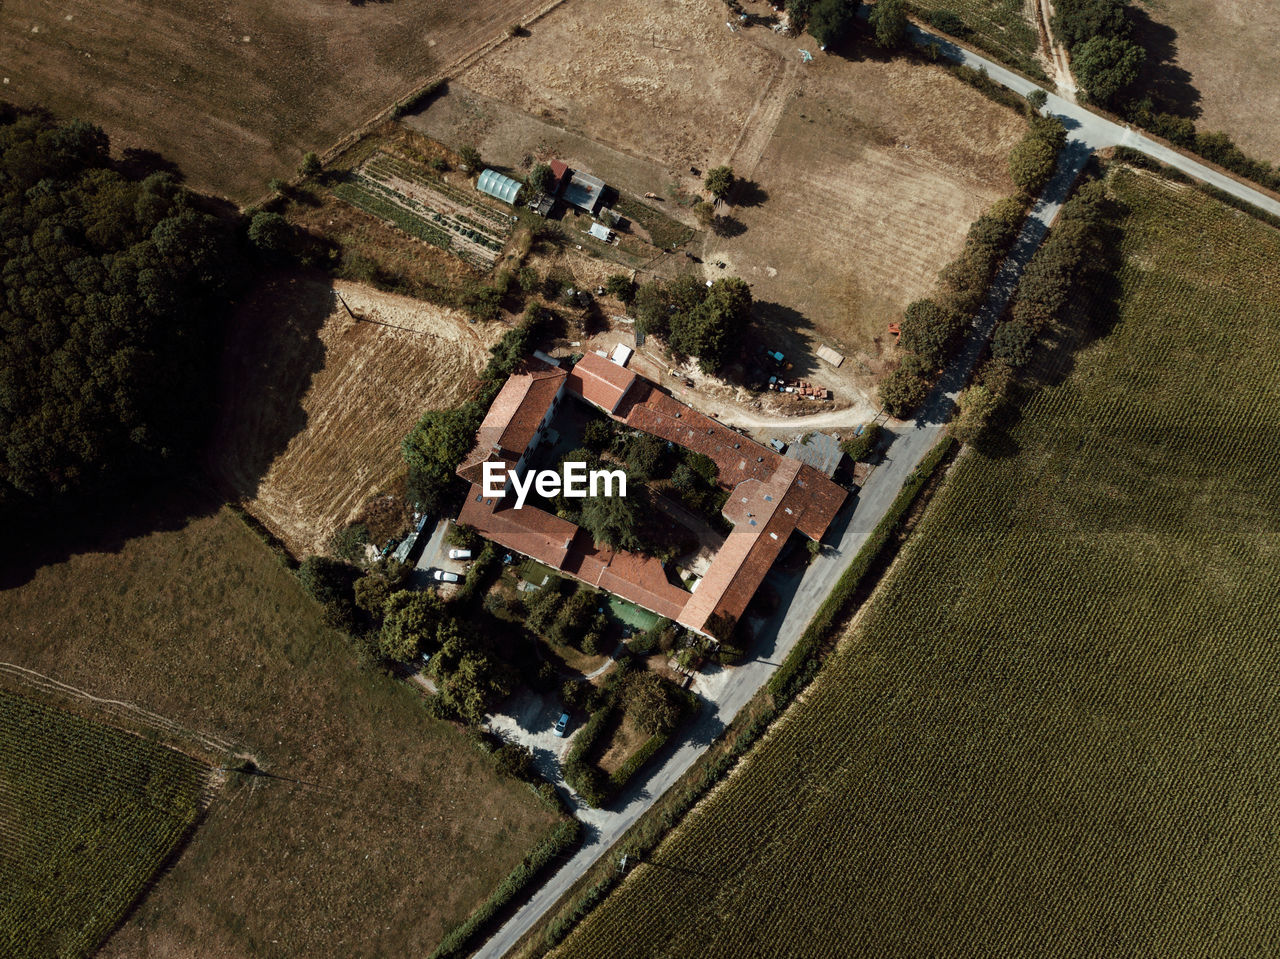 HIGH ANGLE VIEW OF BUILDINGS IN FARM